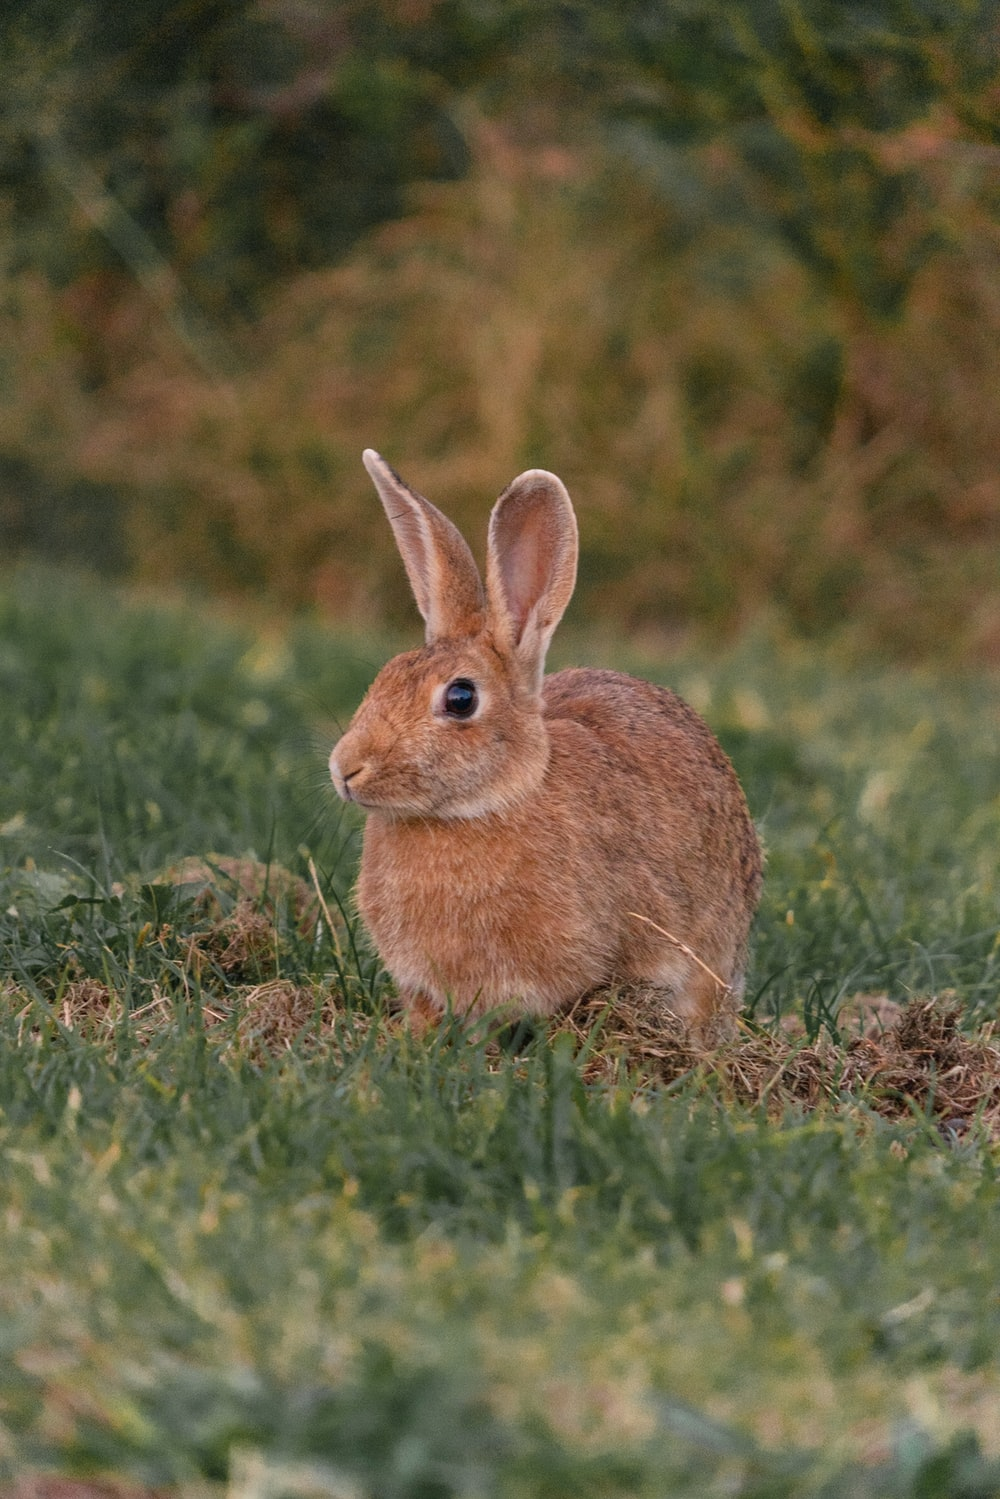 brown hare on grass field